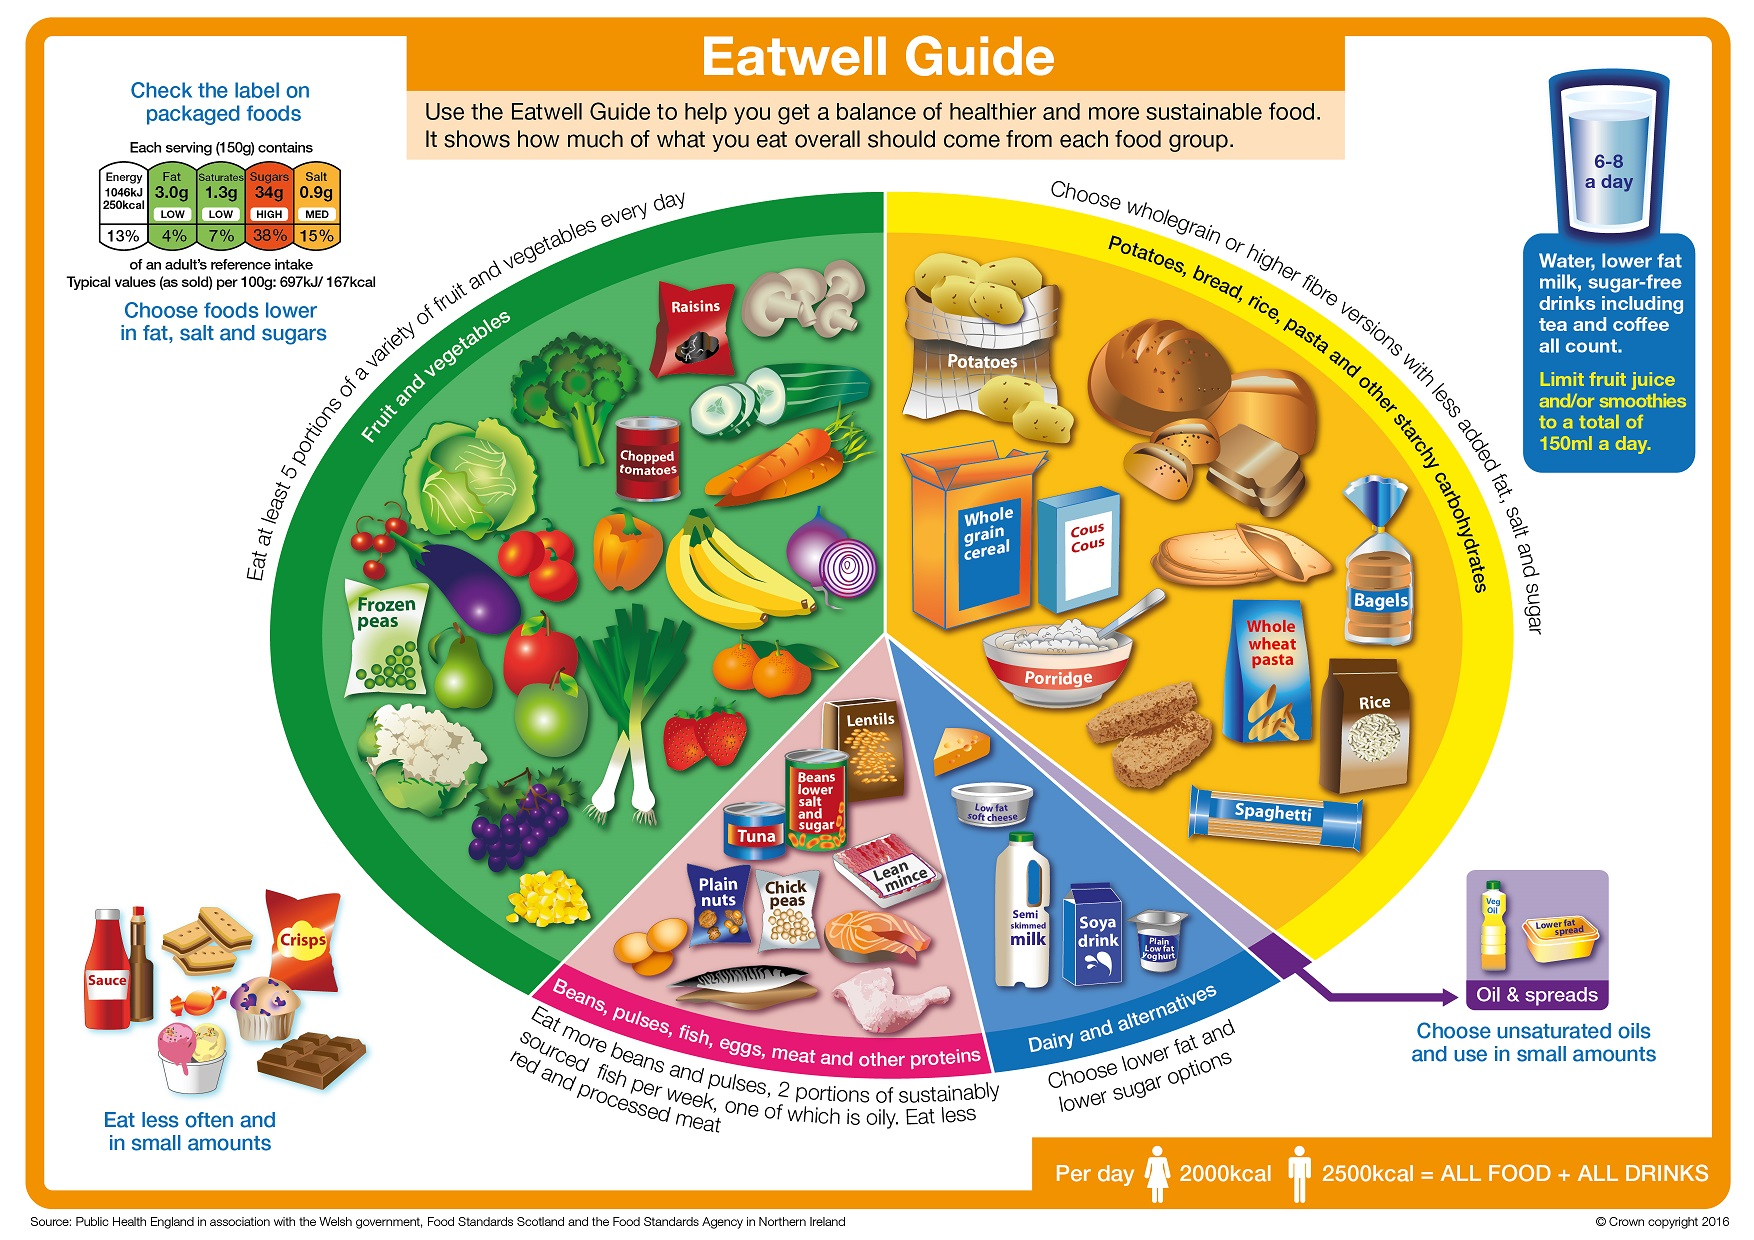 The Eatwell Guide? Not for my clients thank you